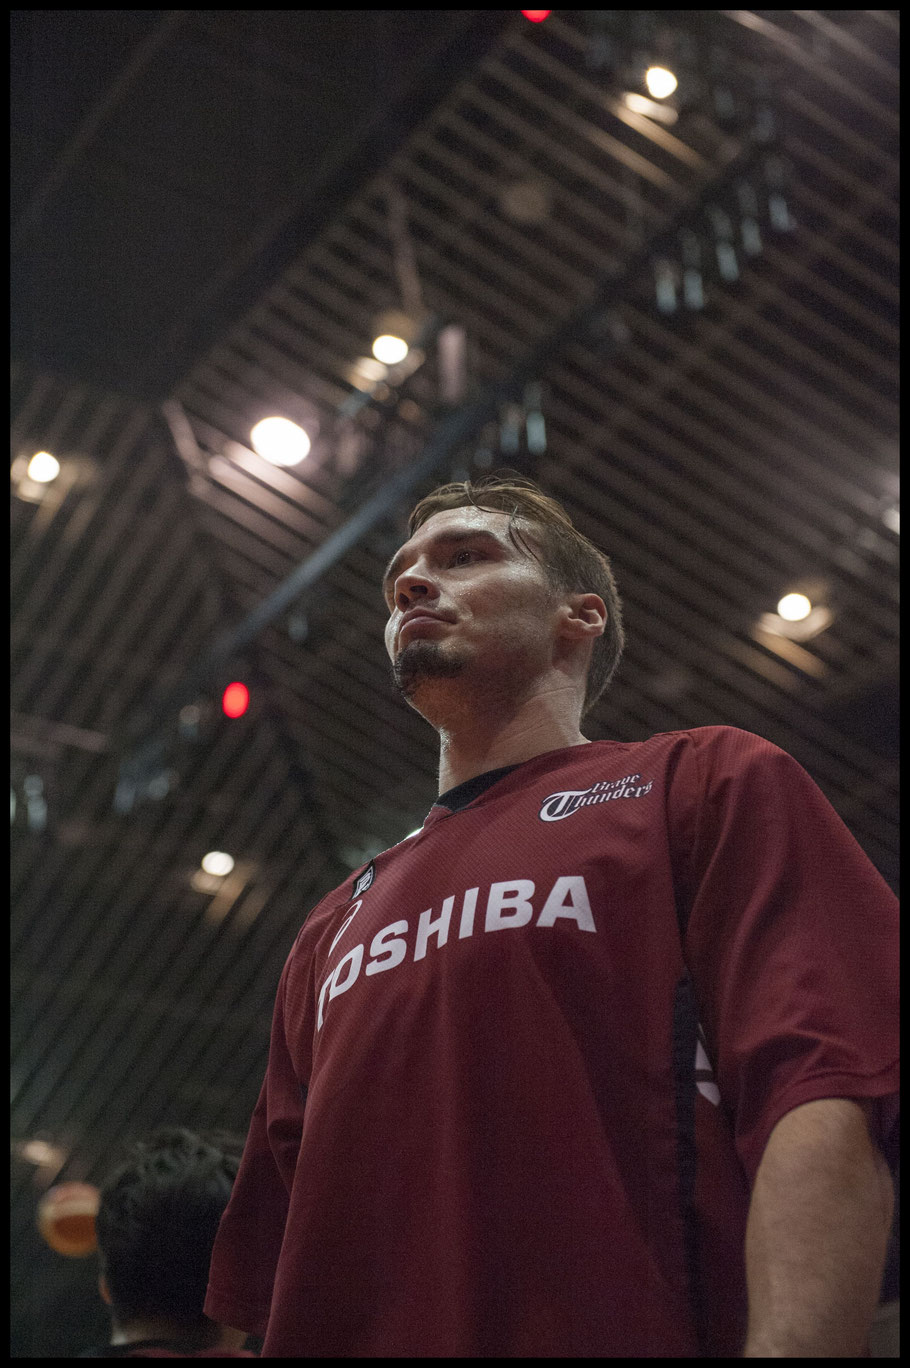 Kawasaki power forward Ryan Spangler — Chris Pfaff, Inside Sport: Japan, May 6, 2017